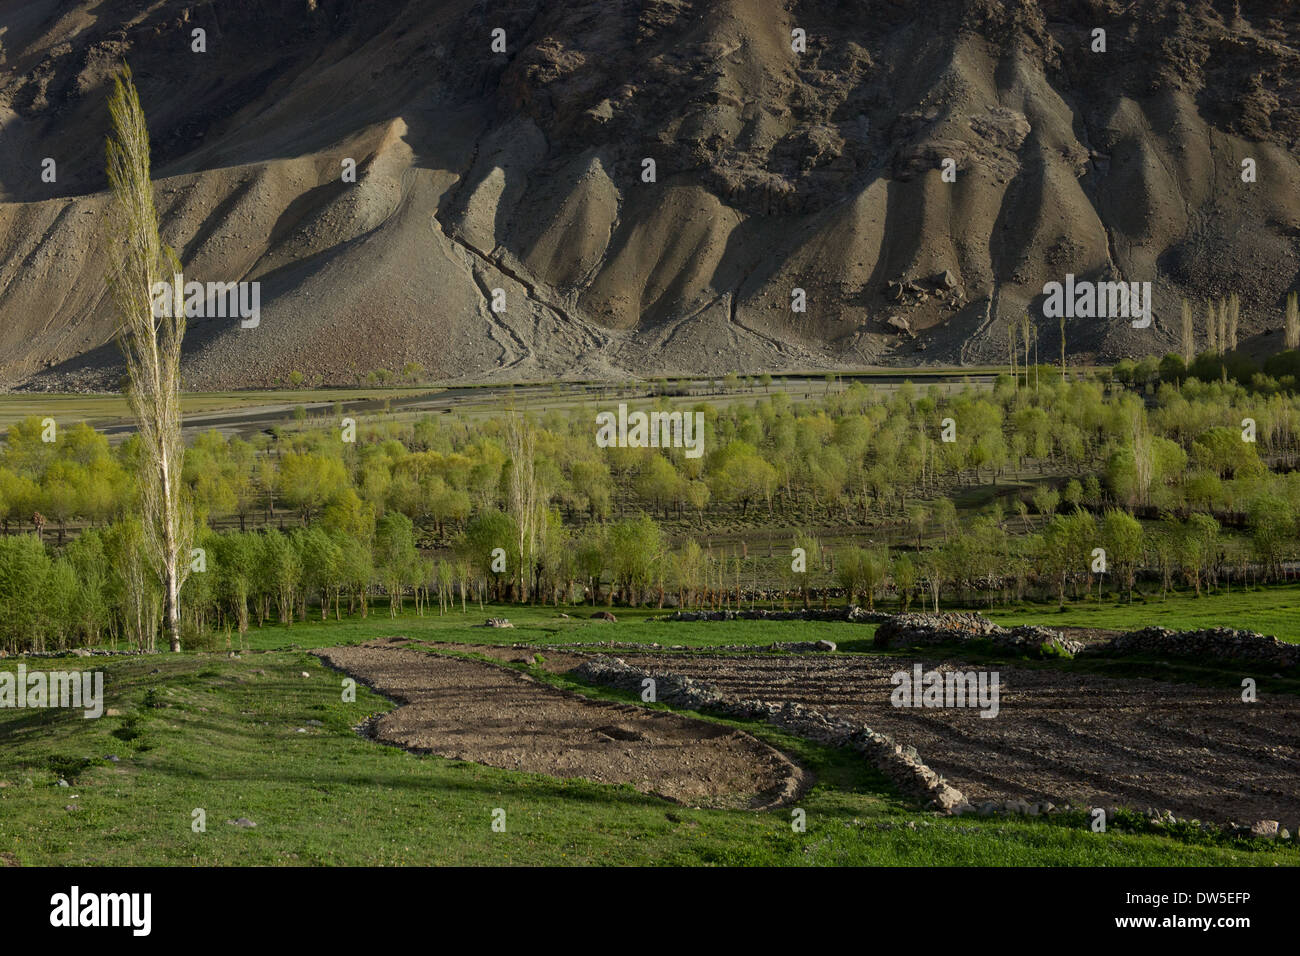 Trees growing in farmland, in the Ghizar River (Gilgit River) Valley near Golaghmuli, seen from the Shandur-Gilgit Road, near the Shandur Pass, Gilgit-Baltistan, Pakistan - Stock Image